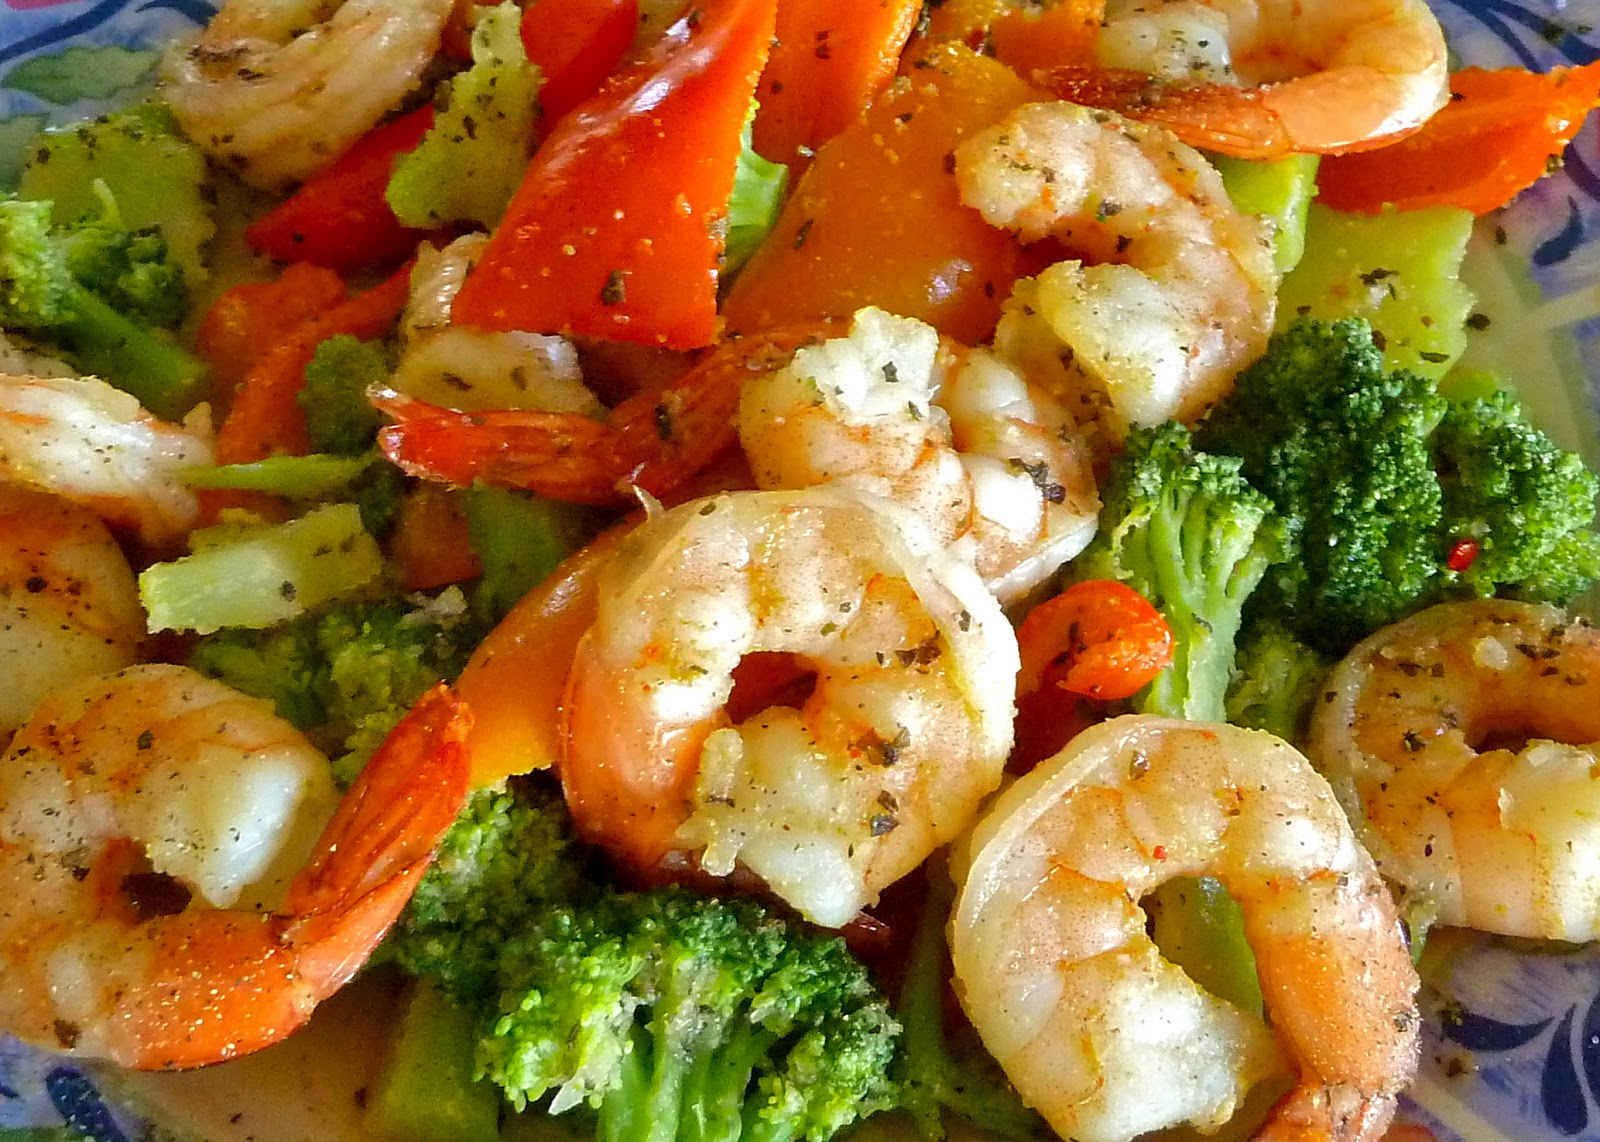 hCG feedback, hCG results, shrimp diner, seafood recipe, human chorionic gonadotropin, onions, broccoli, red peppers and orange peppers, seasoning